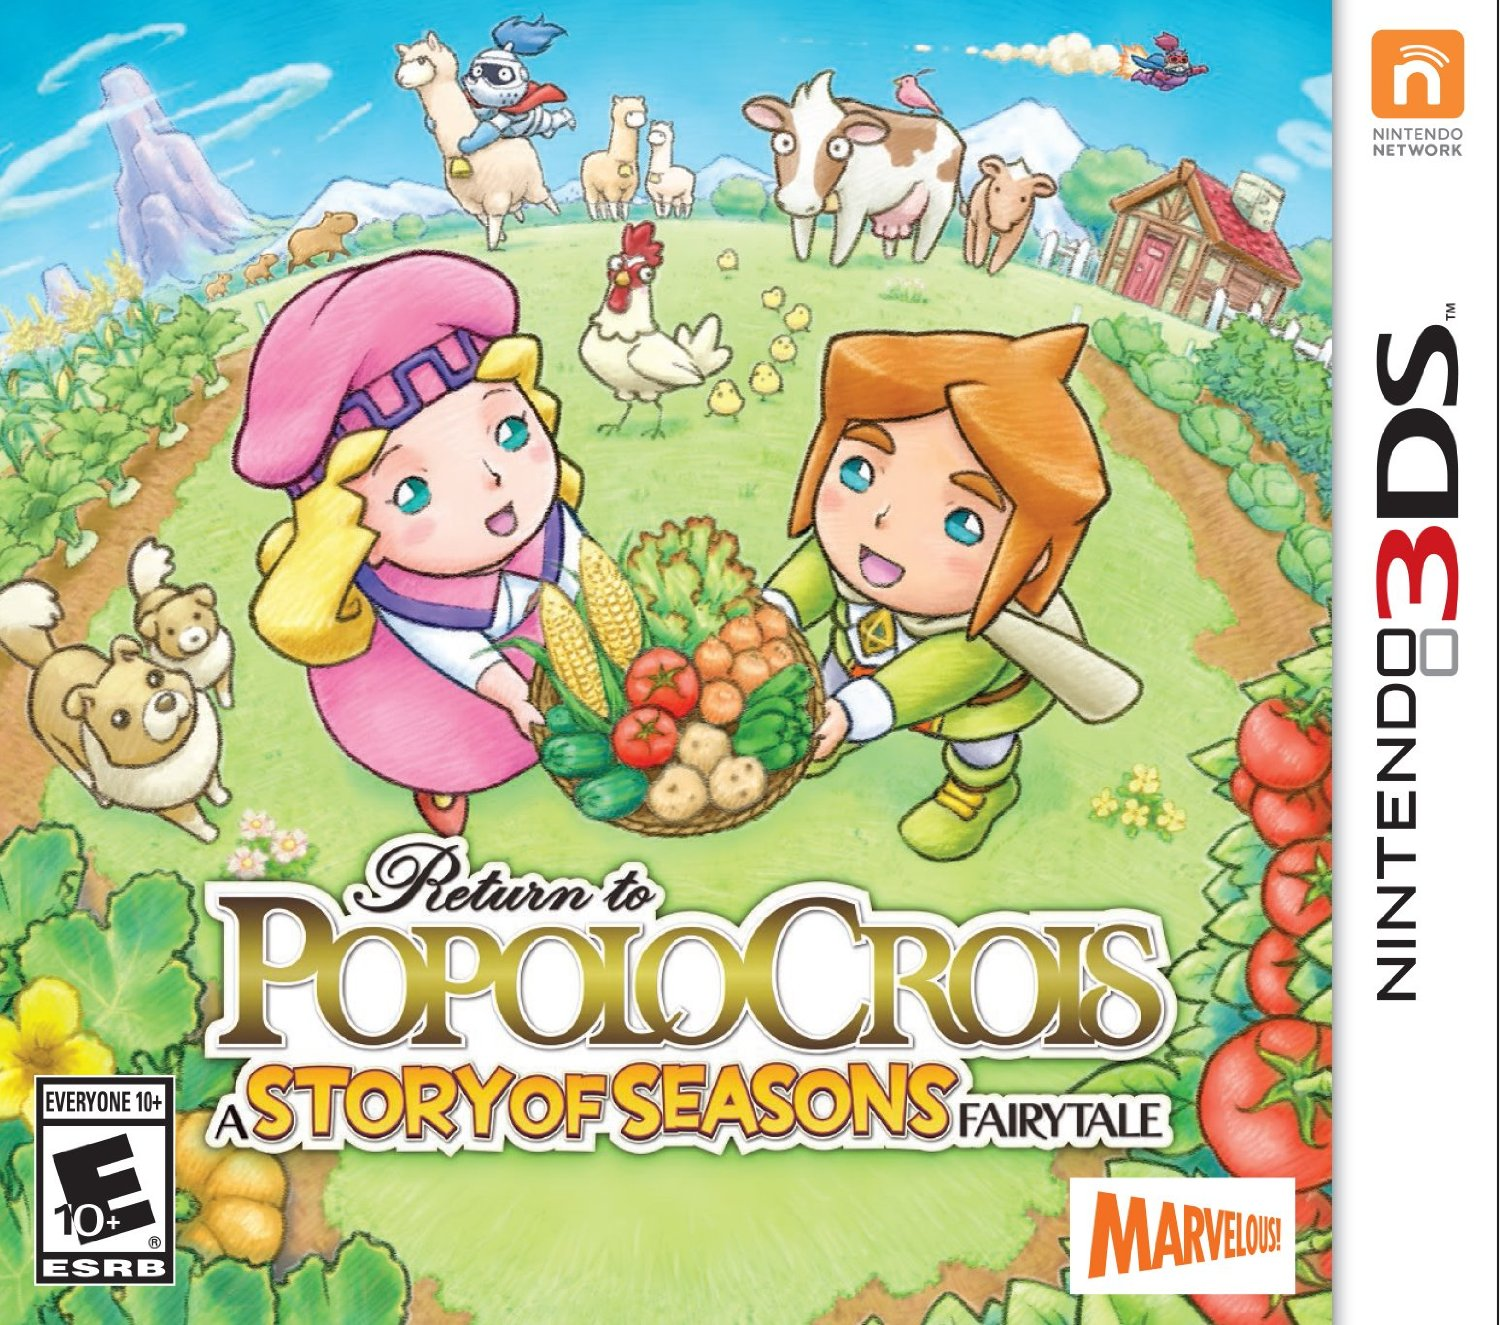 PopoloCroisBox